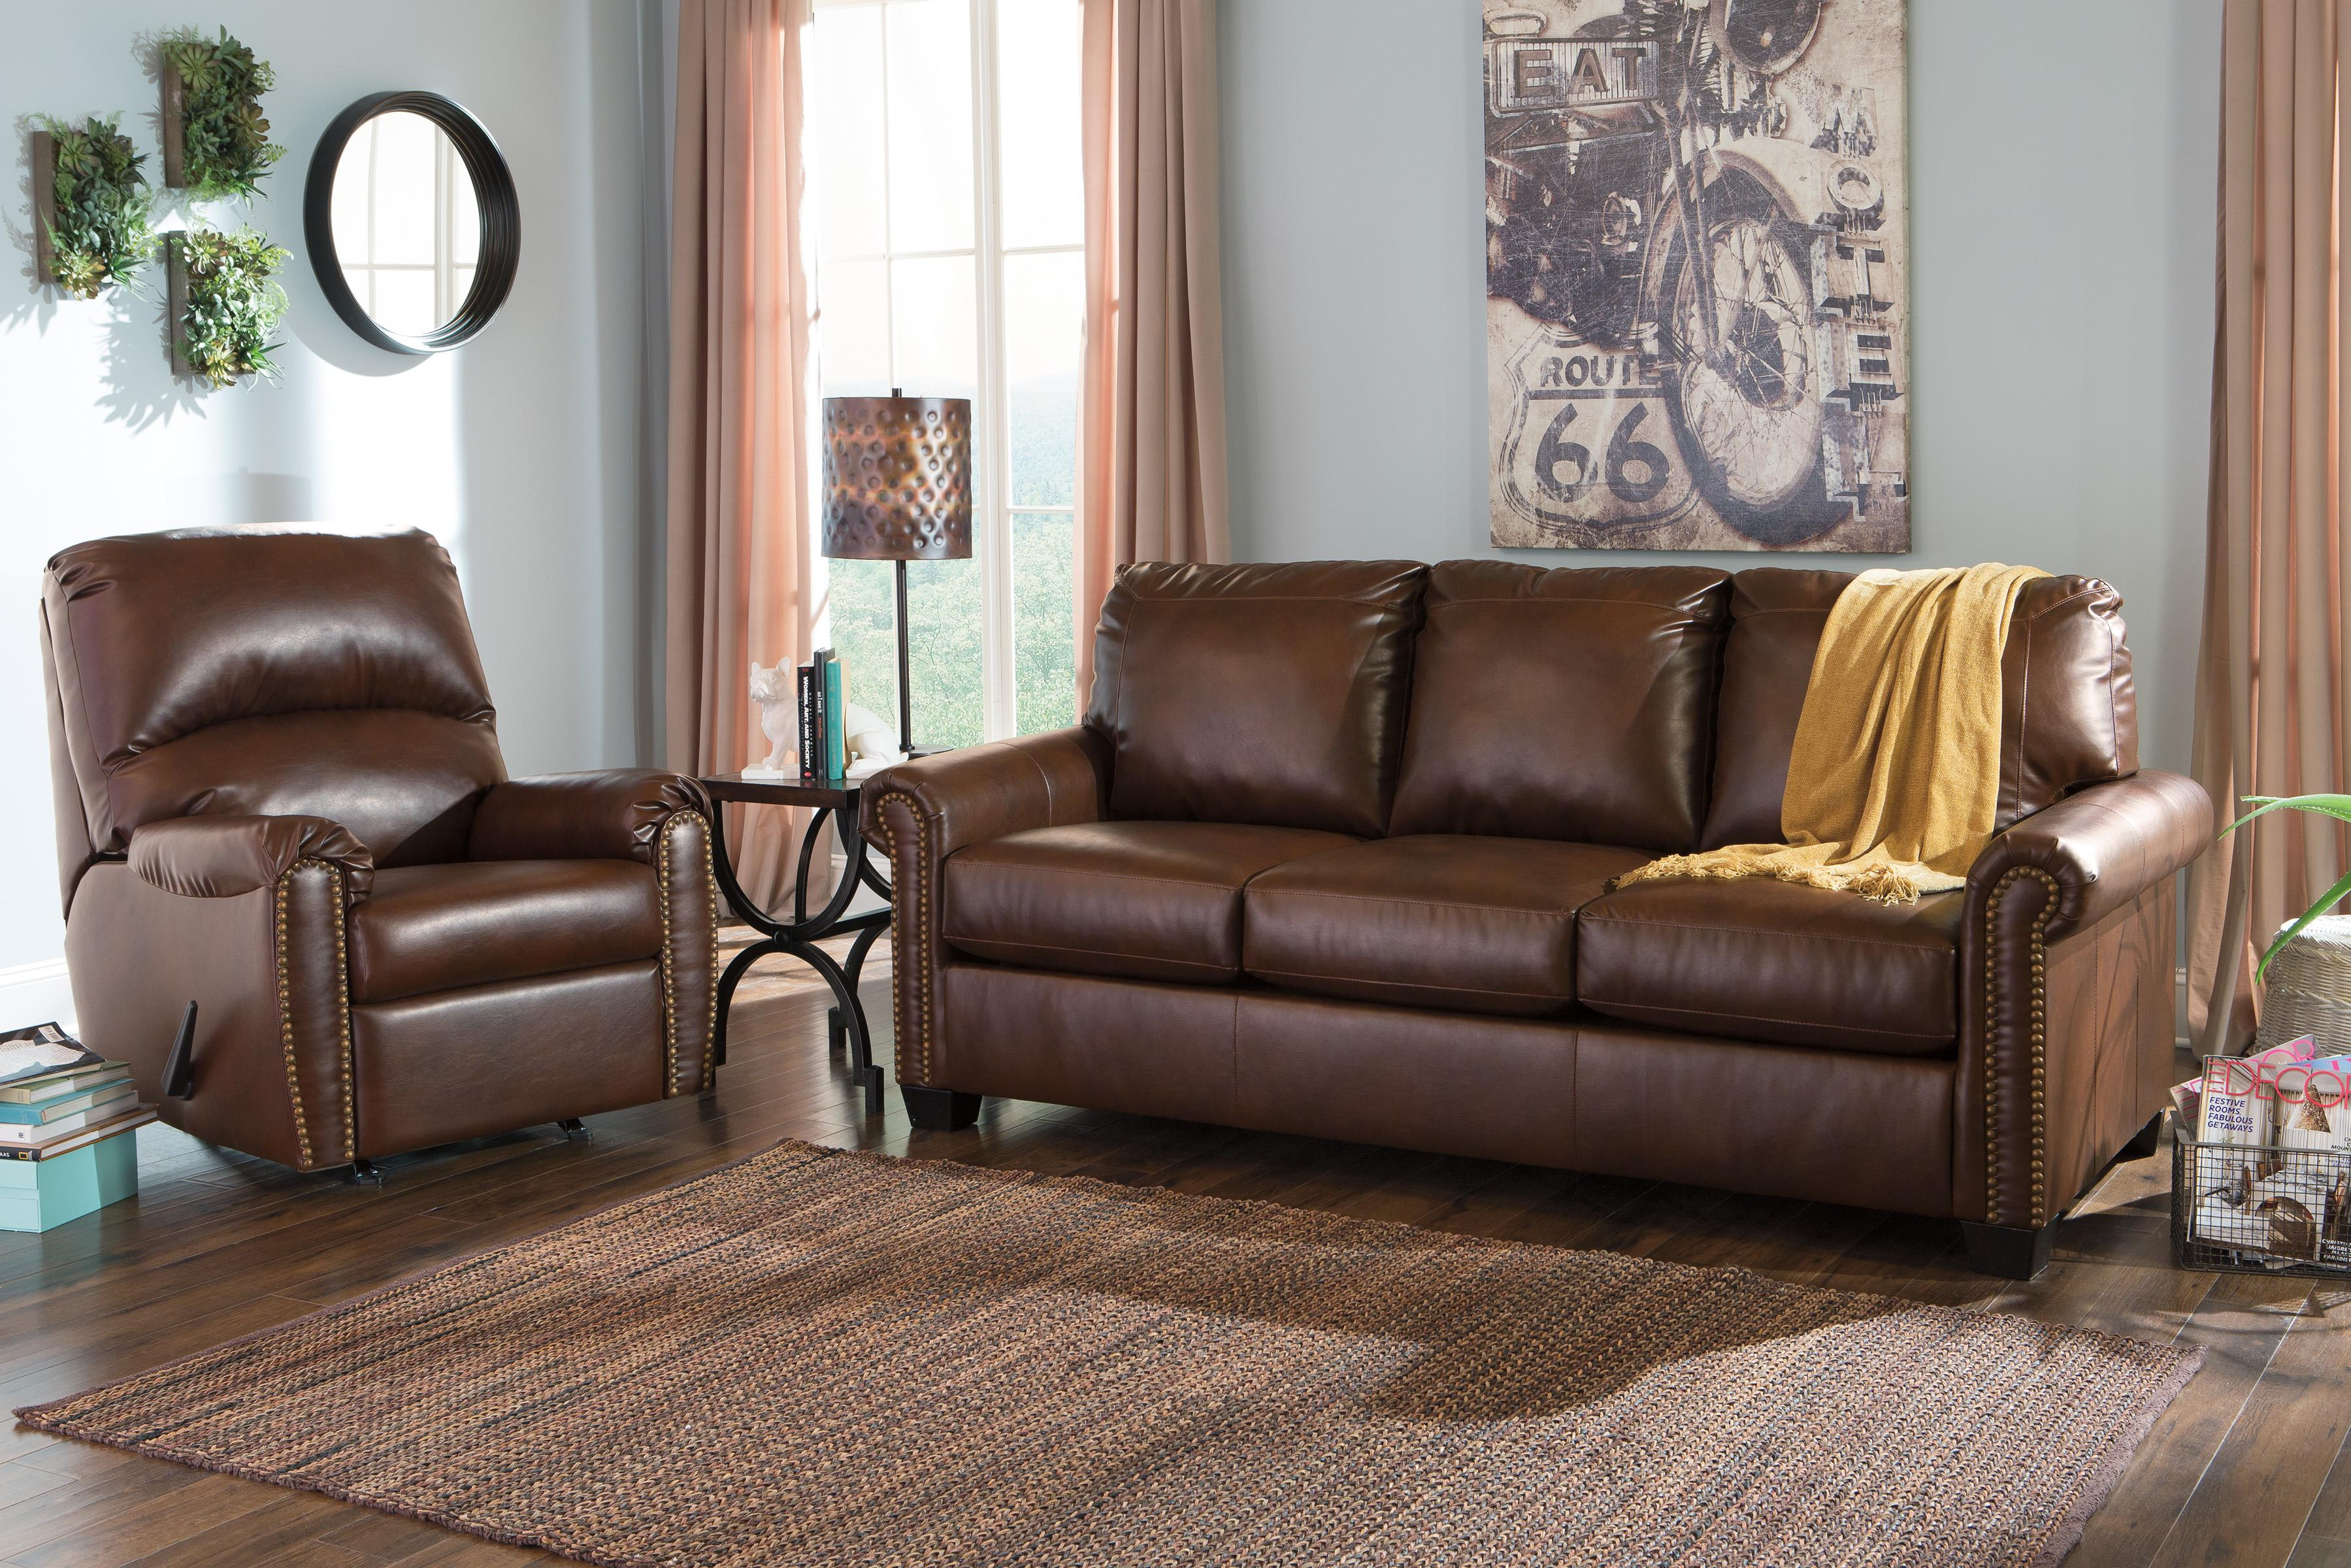 Signature Design by Ashley Lottie DuraBlend® Transitional Bonded Leather Match Rocker Recliner with Nailhead Trim - Wayside Furniture - Three Way Recliner : rocking reclining sectional - Sectionals, Sofas & Couches